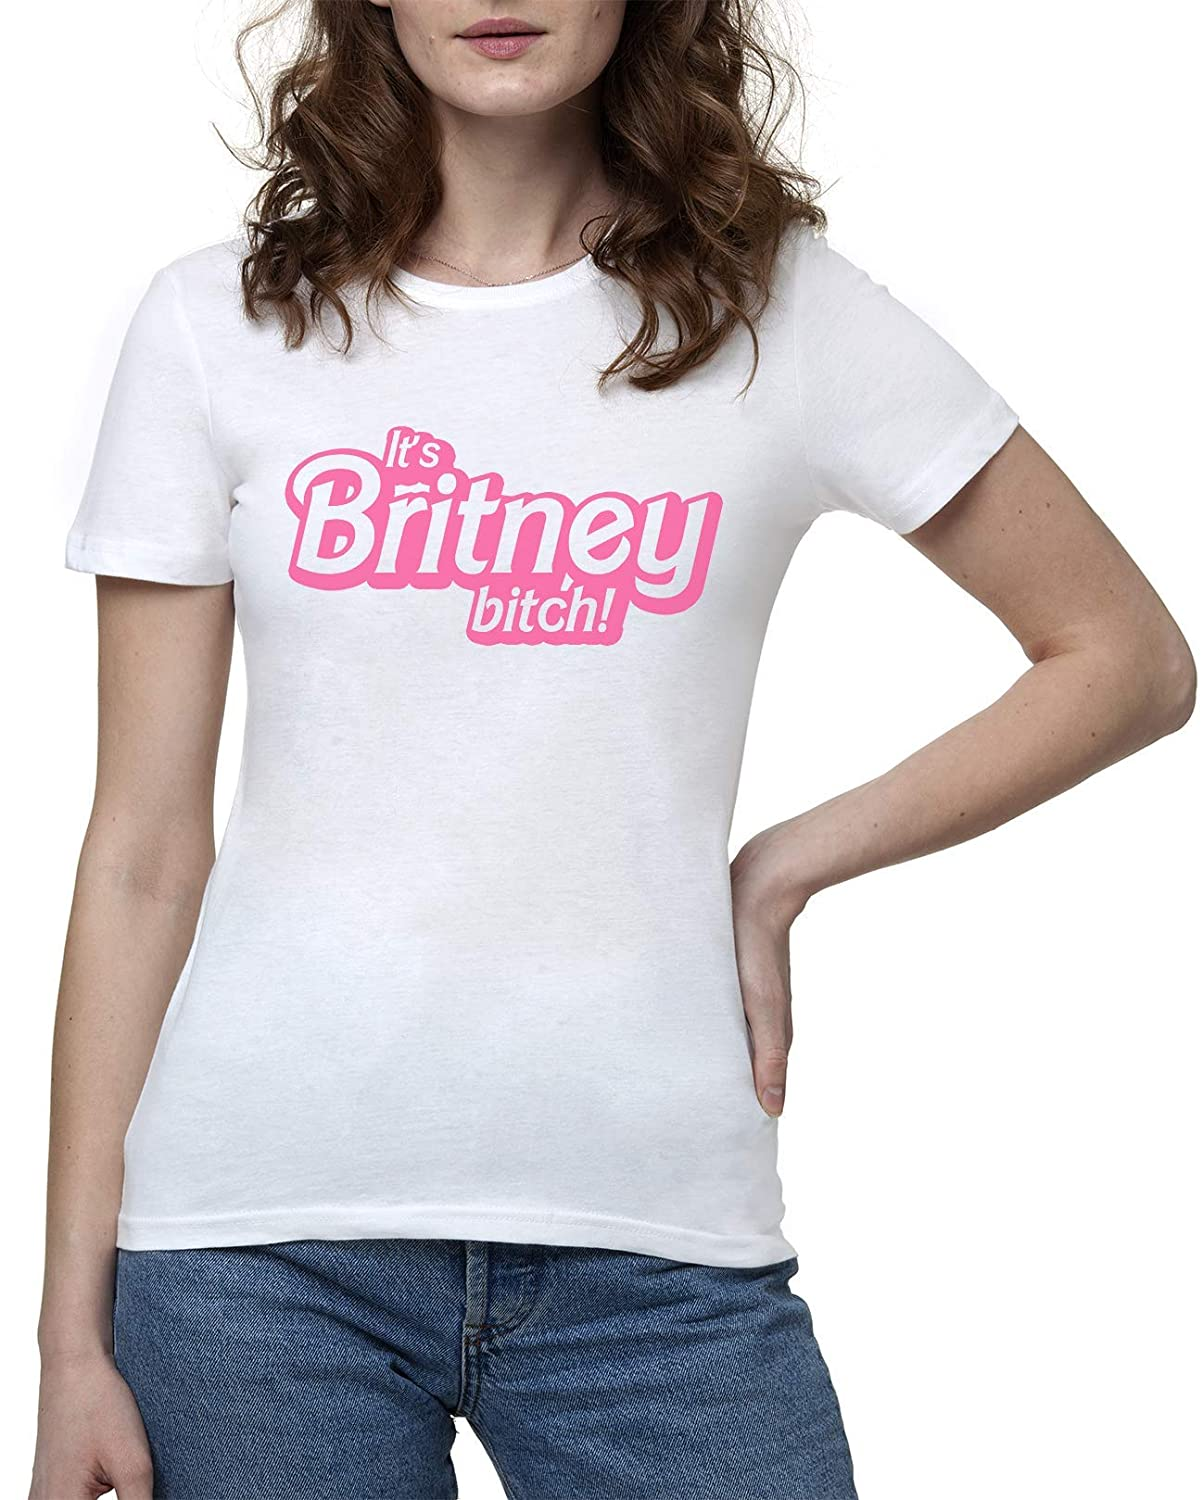 Womens White T-Shirt Tshirt T Shirt Its Its Britney Bitch Donna Maglietta Bianco